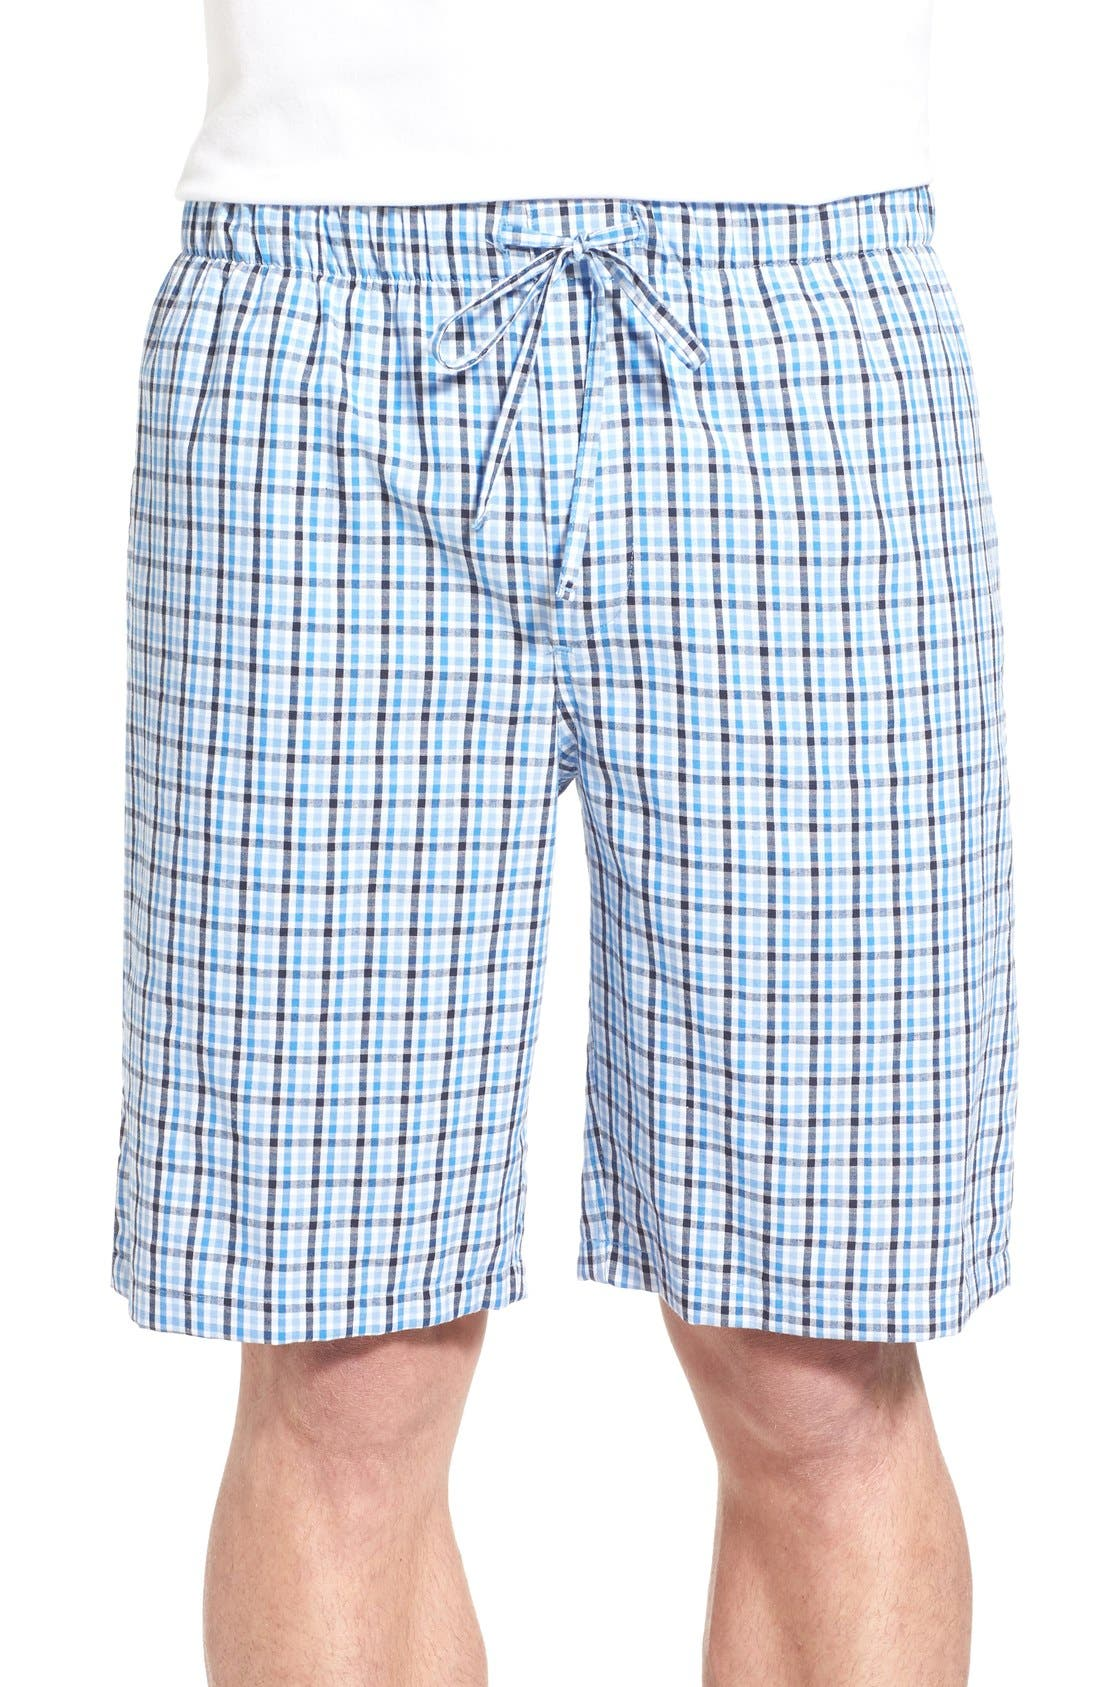 NORDSTROM MEN'S SHOP Nordstrom Plaid Pajama Shorts